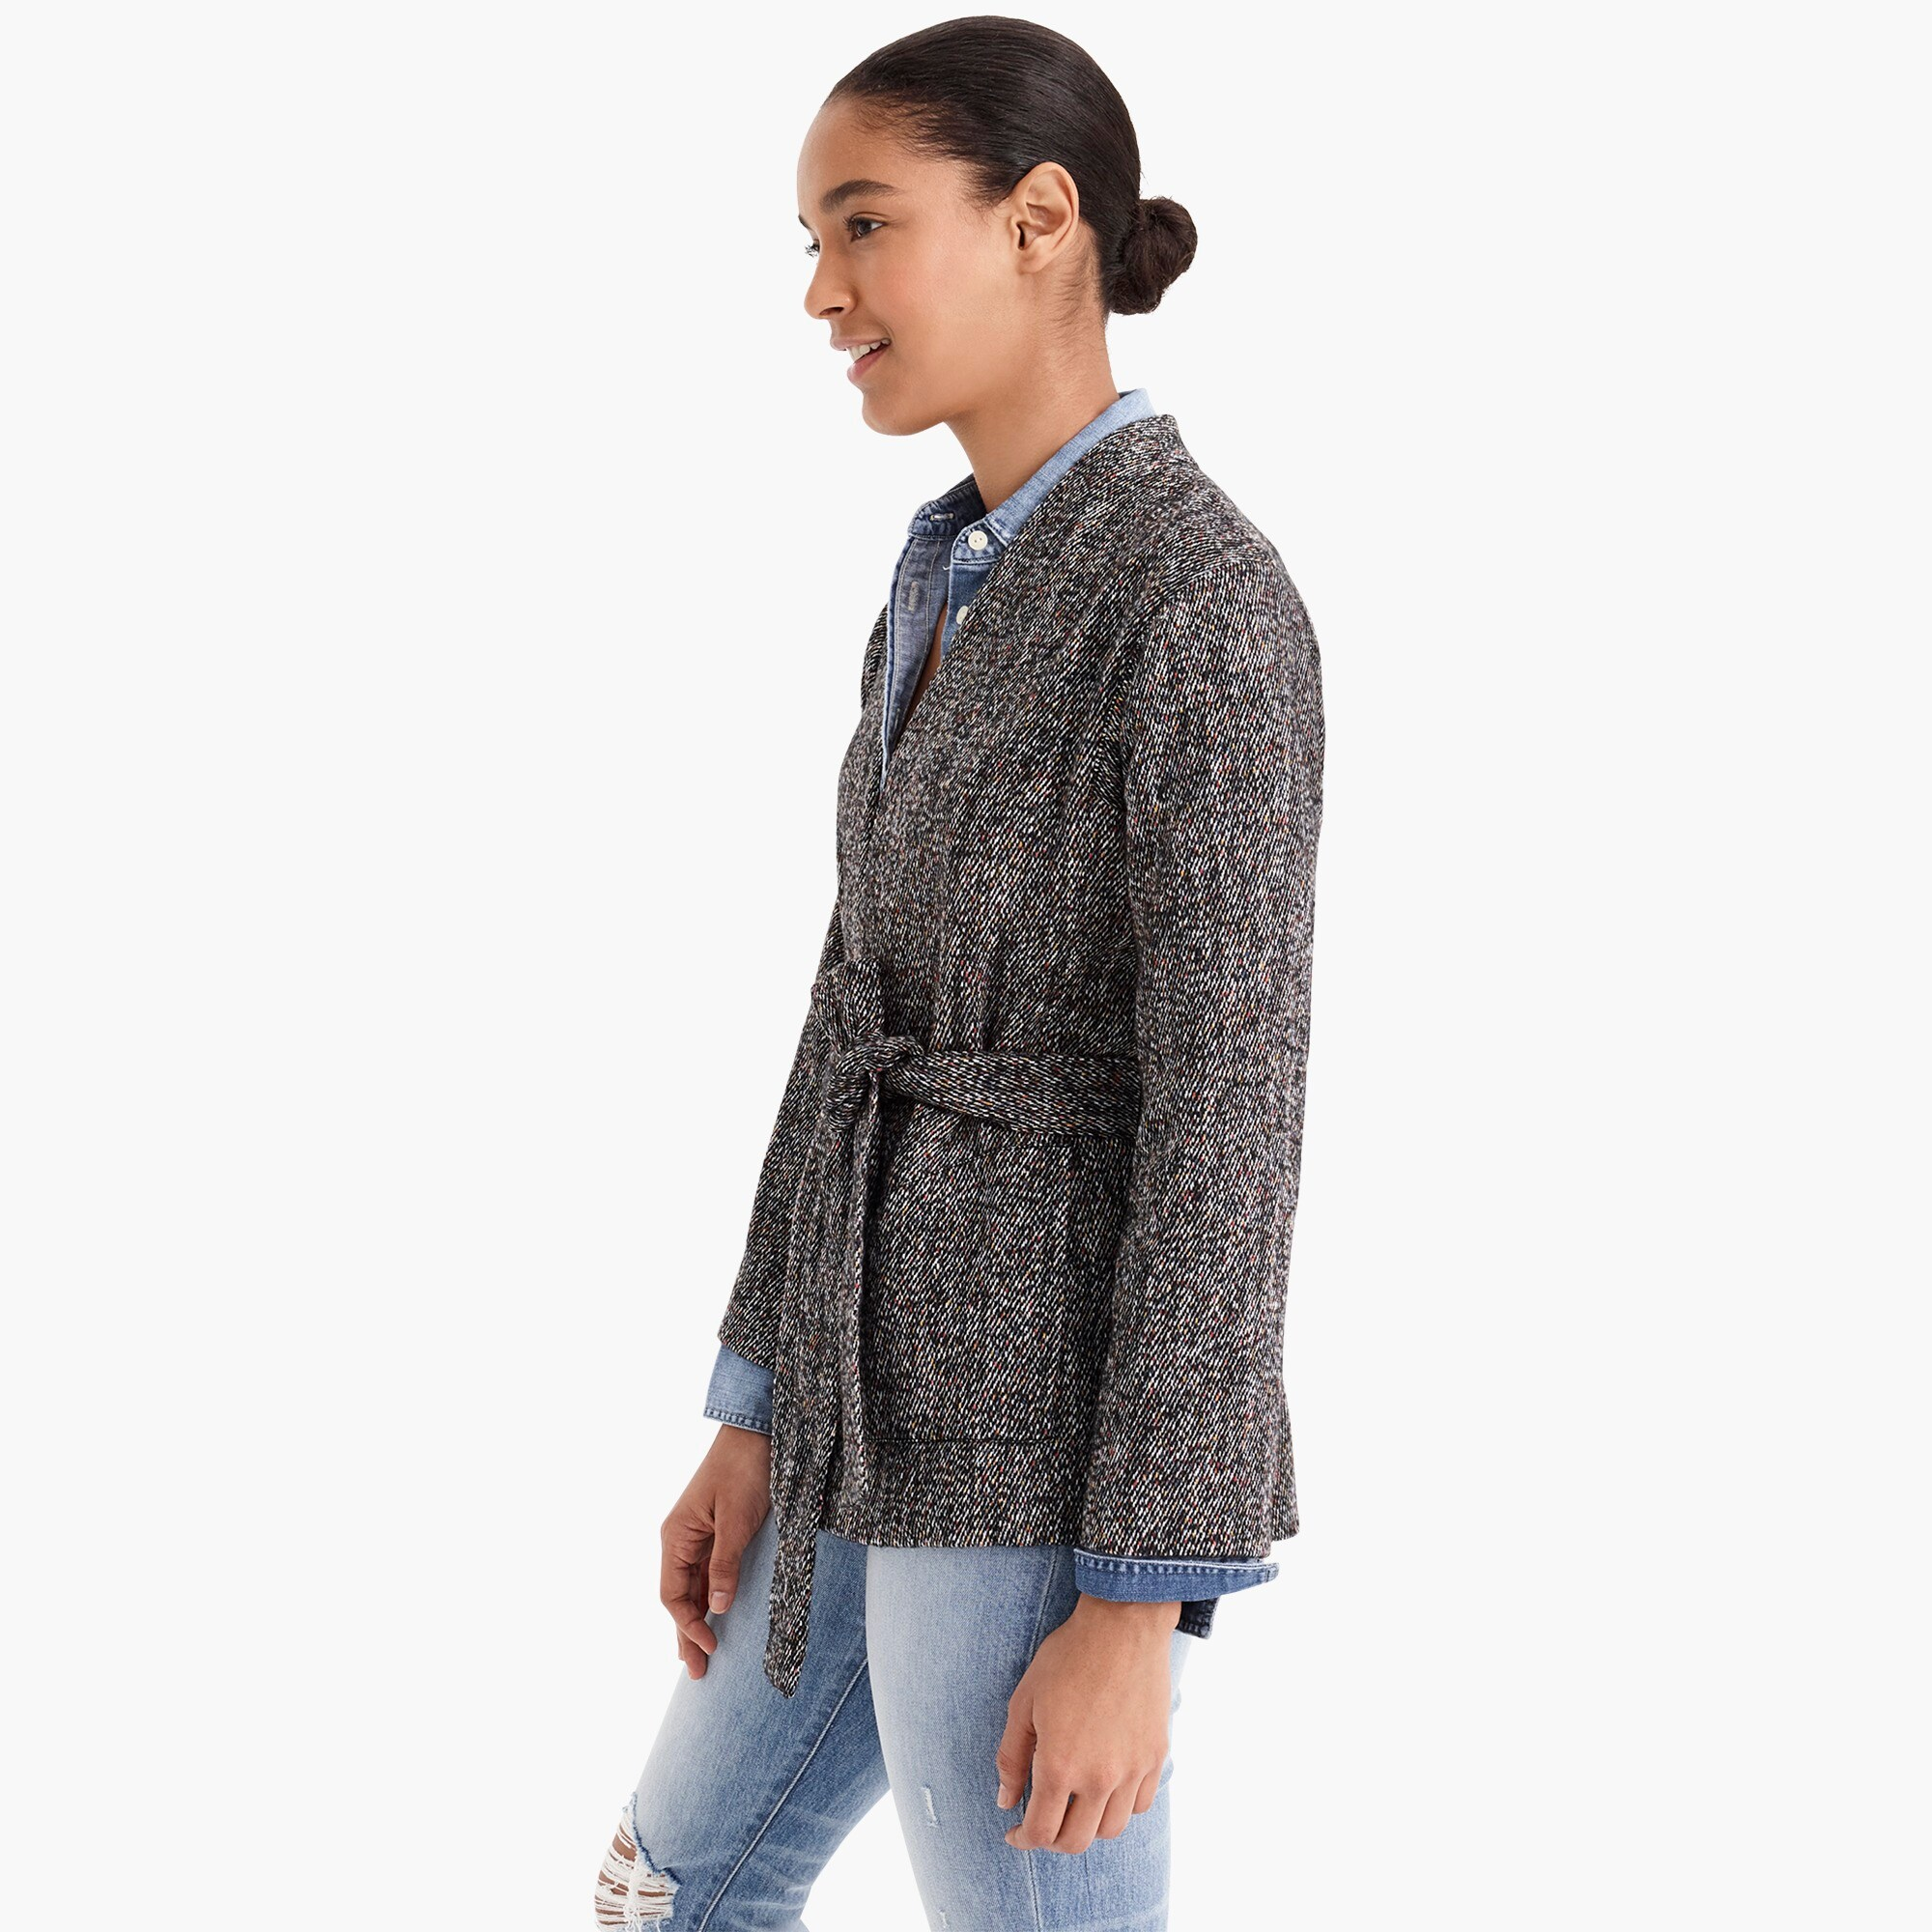 Point Sur wrap jacket in Donegal tweed